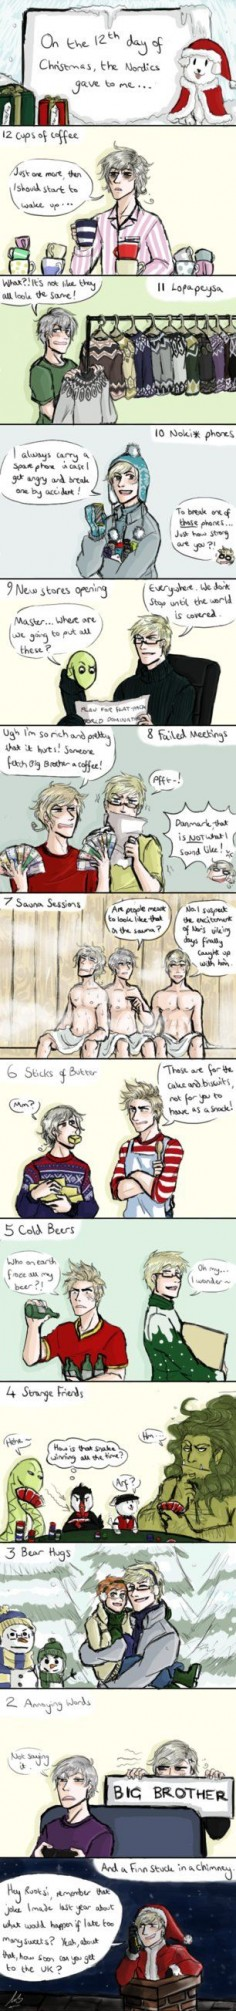 12 Days of Nordic by maivalkov on DeviantArt //does it make you late if you in a different time zone